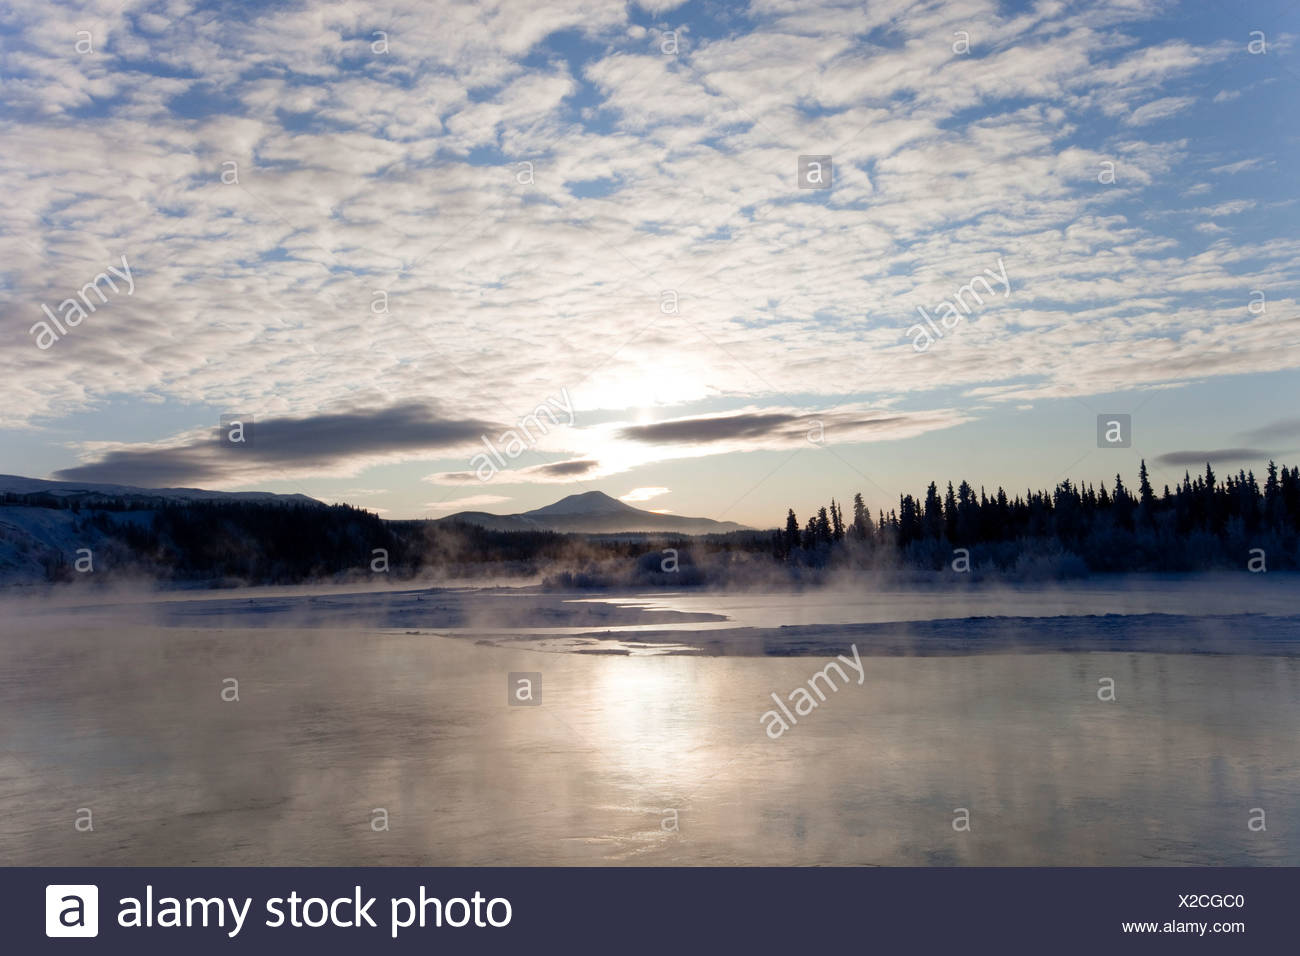 Ice fog, freezing, steaming, Yukon River, Golden Horn Mountain behind, near Whitehorse, Yukon Territory, Canada - Stock Image